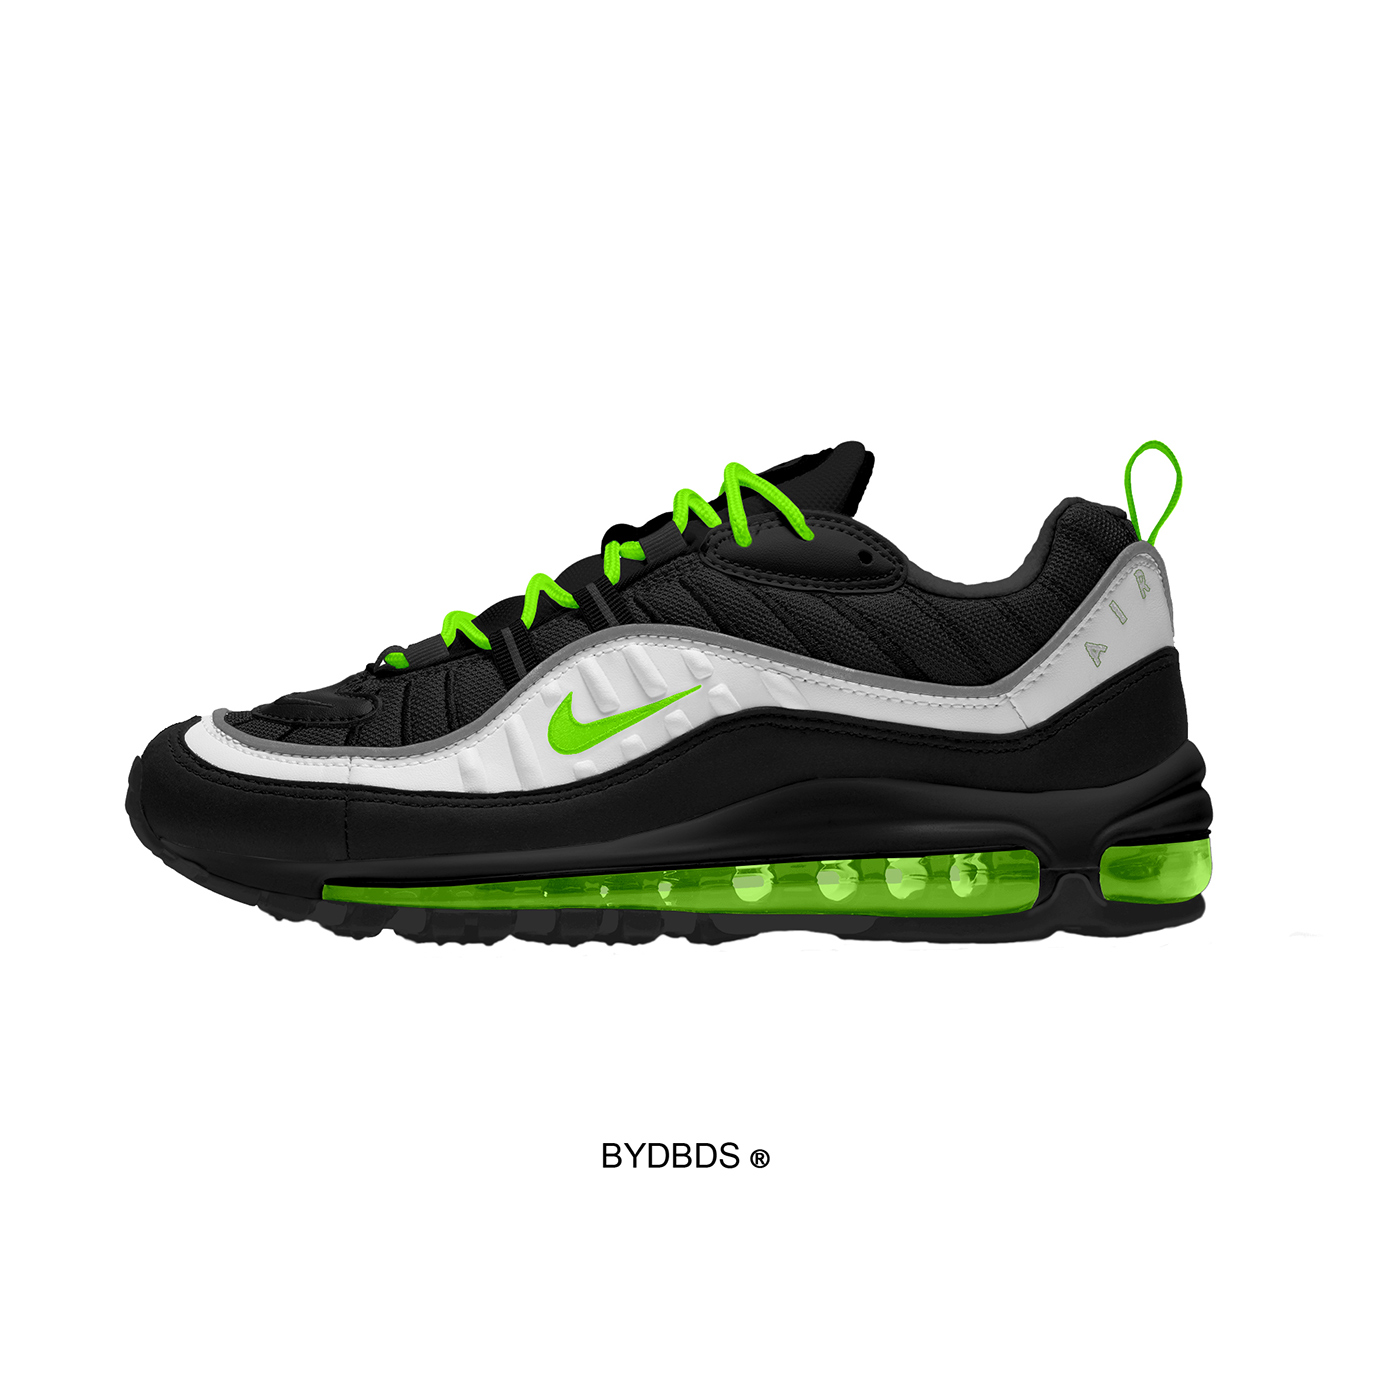 Free nike air max 98 psd template mockup on behance download here maxwellsz